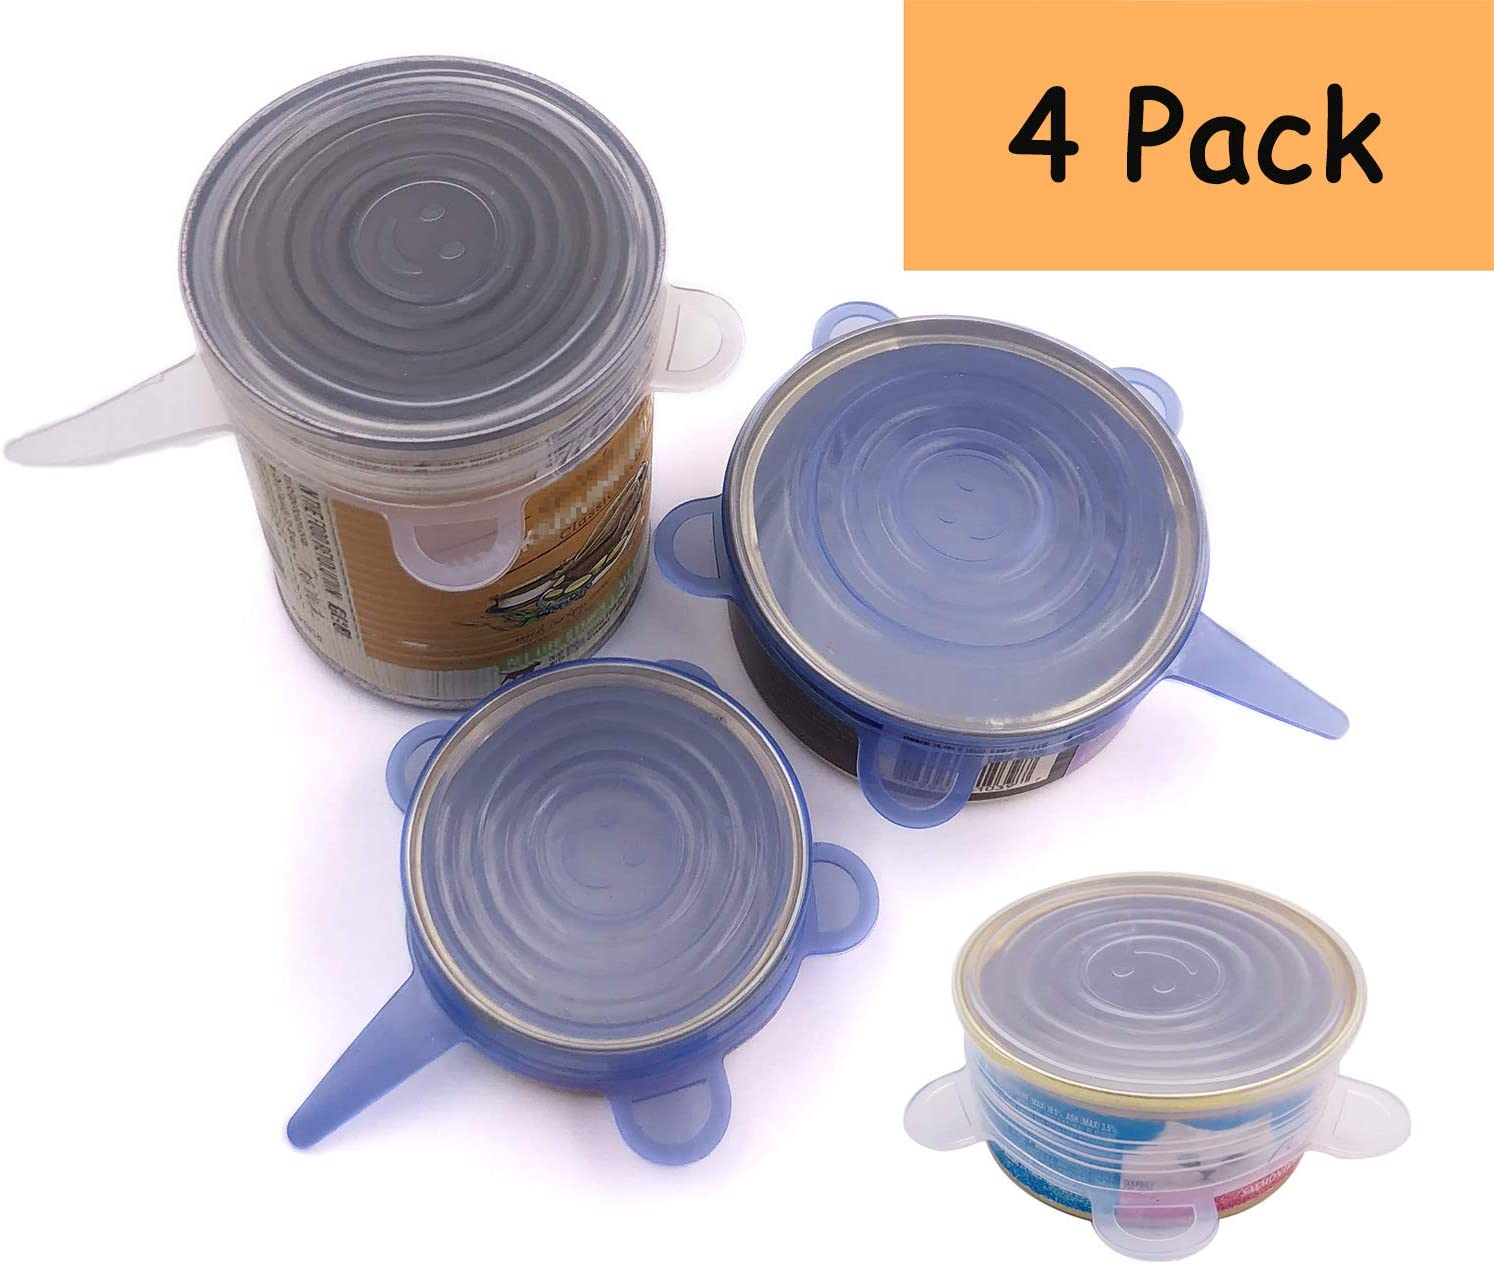 Comtim Pet Food Can Lids, Silicone Stretch Can Lids Covers for Dog Cat Food, Reusable Expandable Universal Size Fit Most Cans and Jars